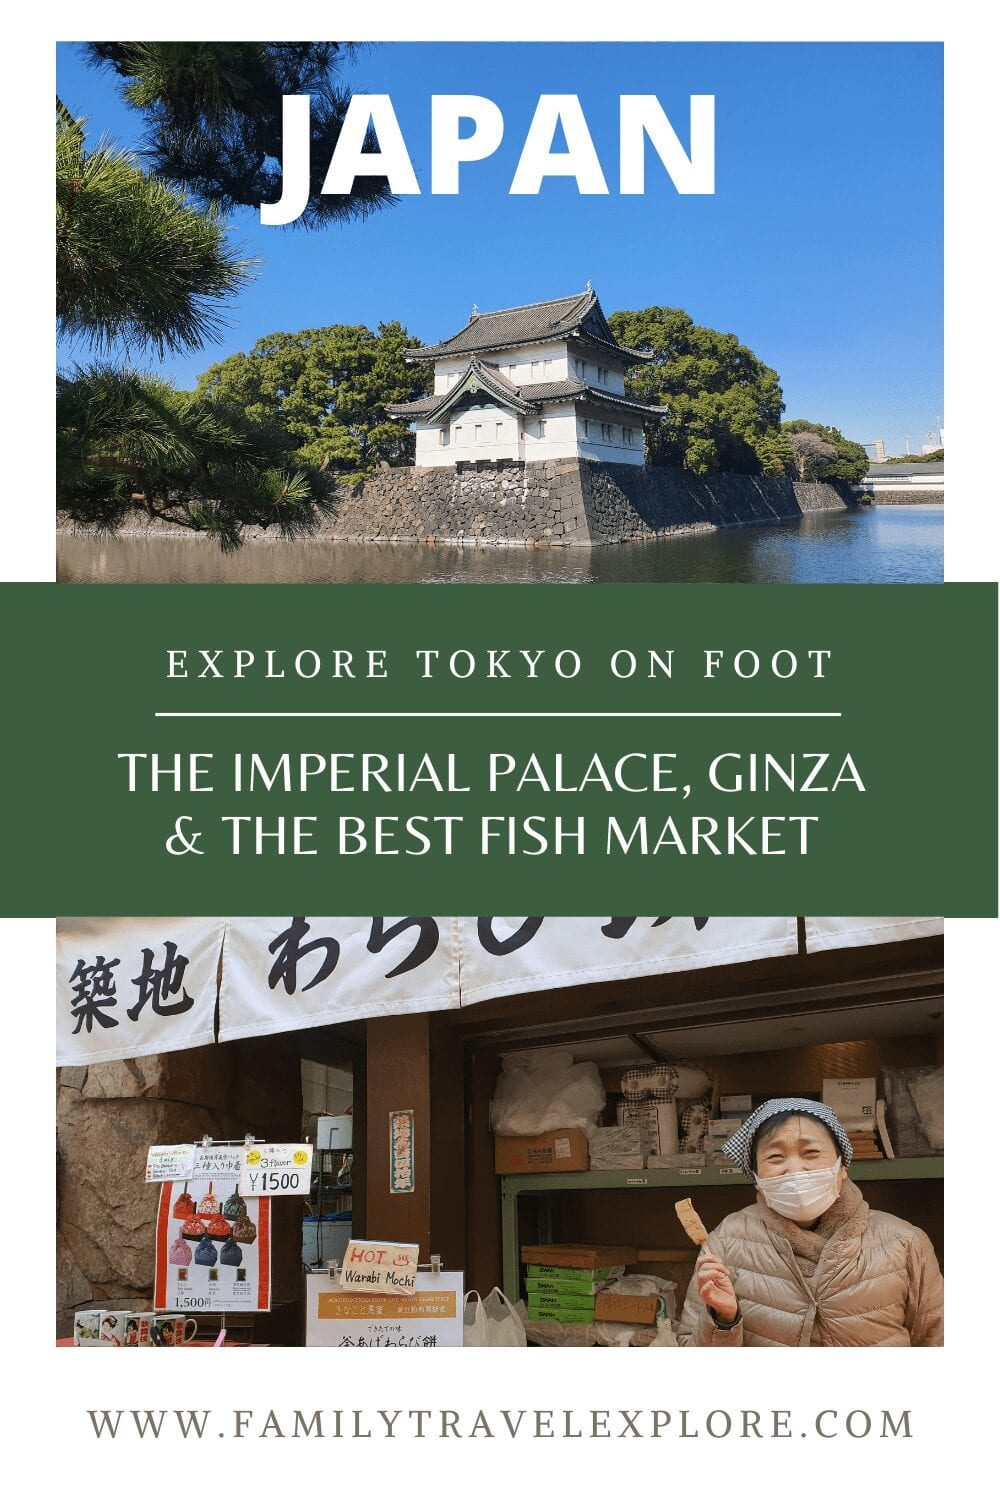 Ginza, The Imperial Palace, & The Best Fish Market In Tokyo